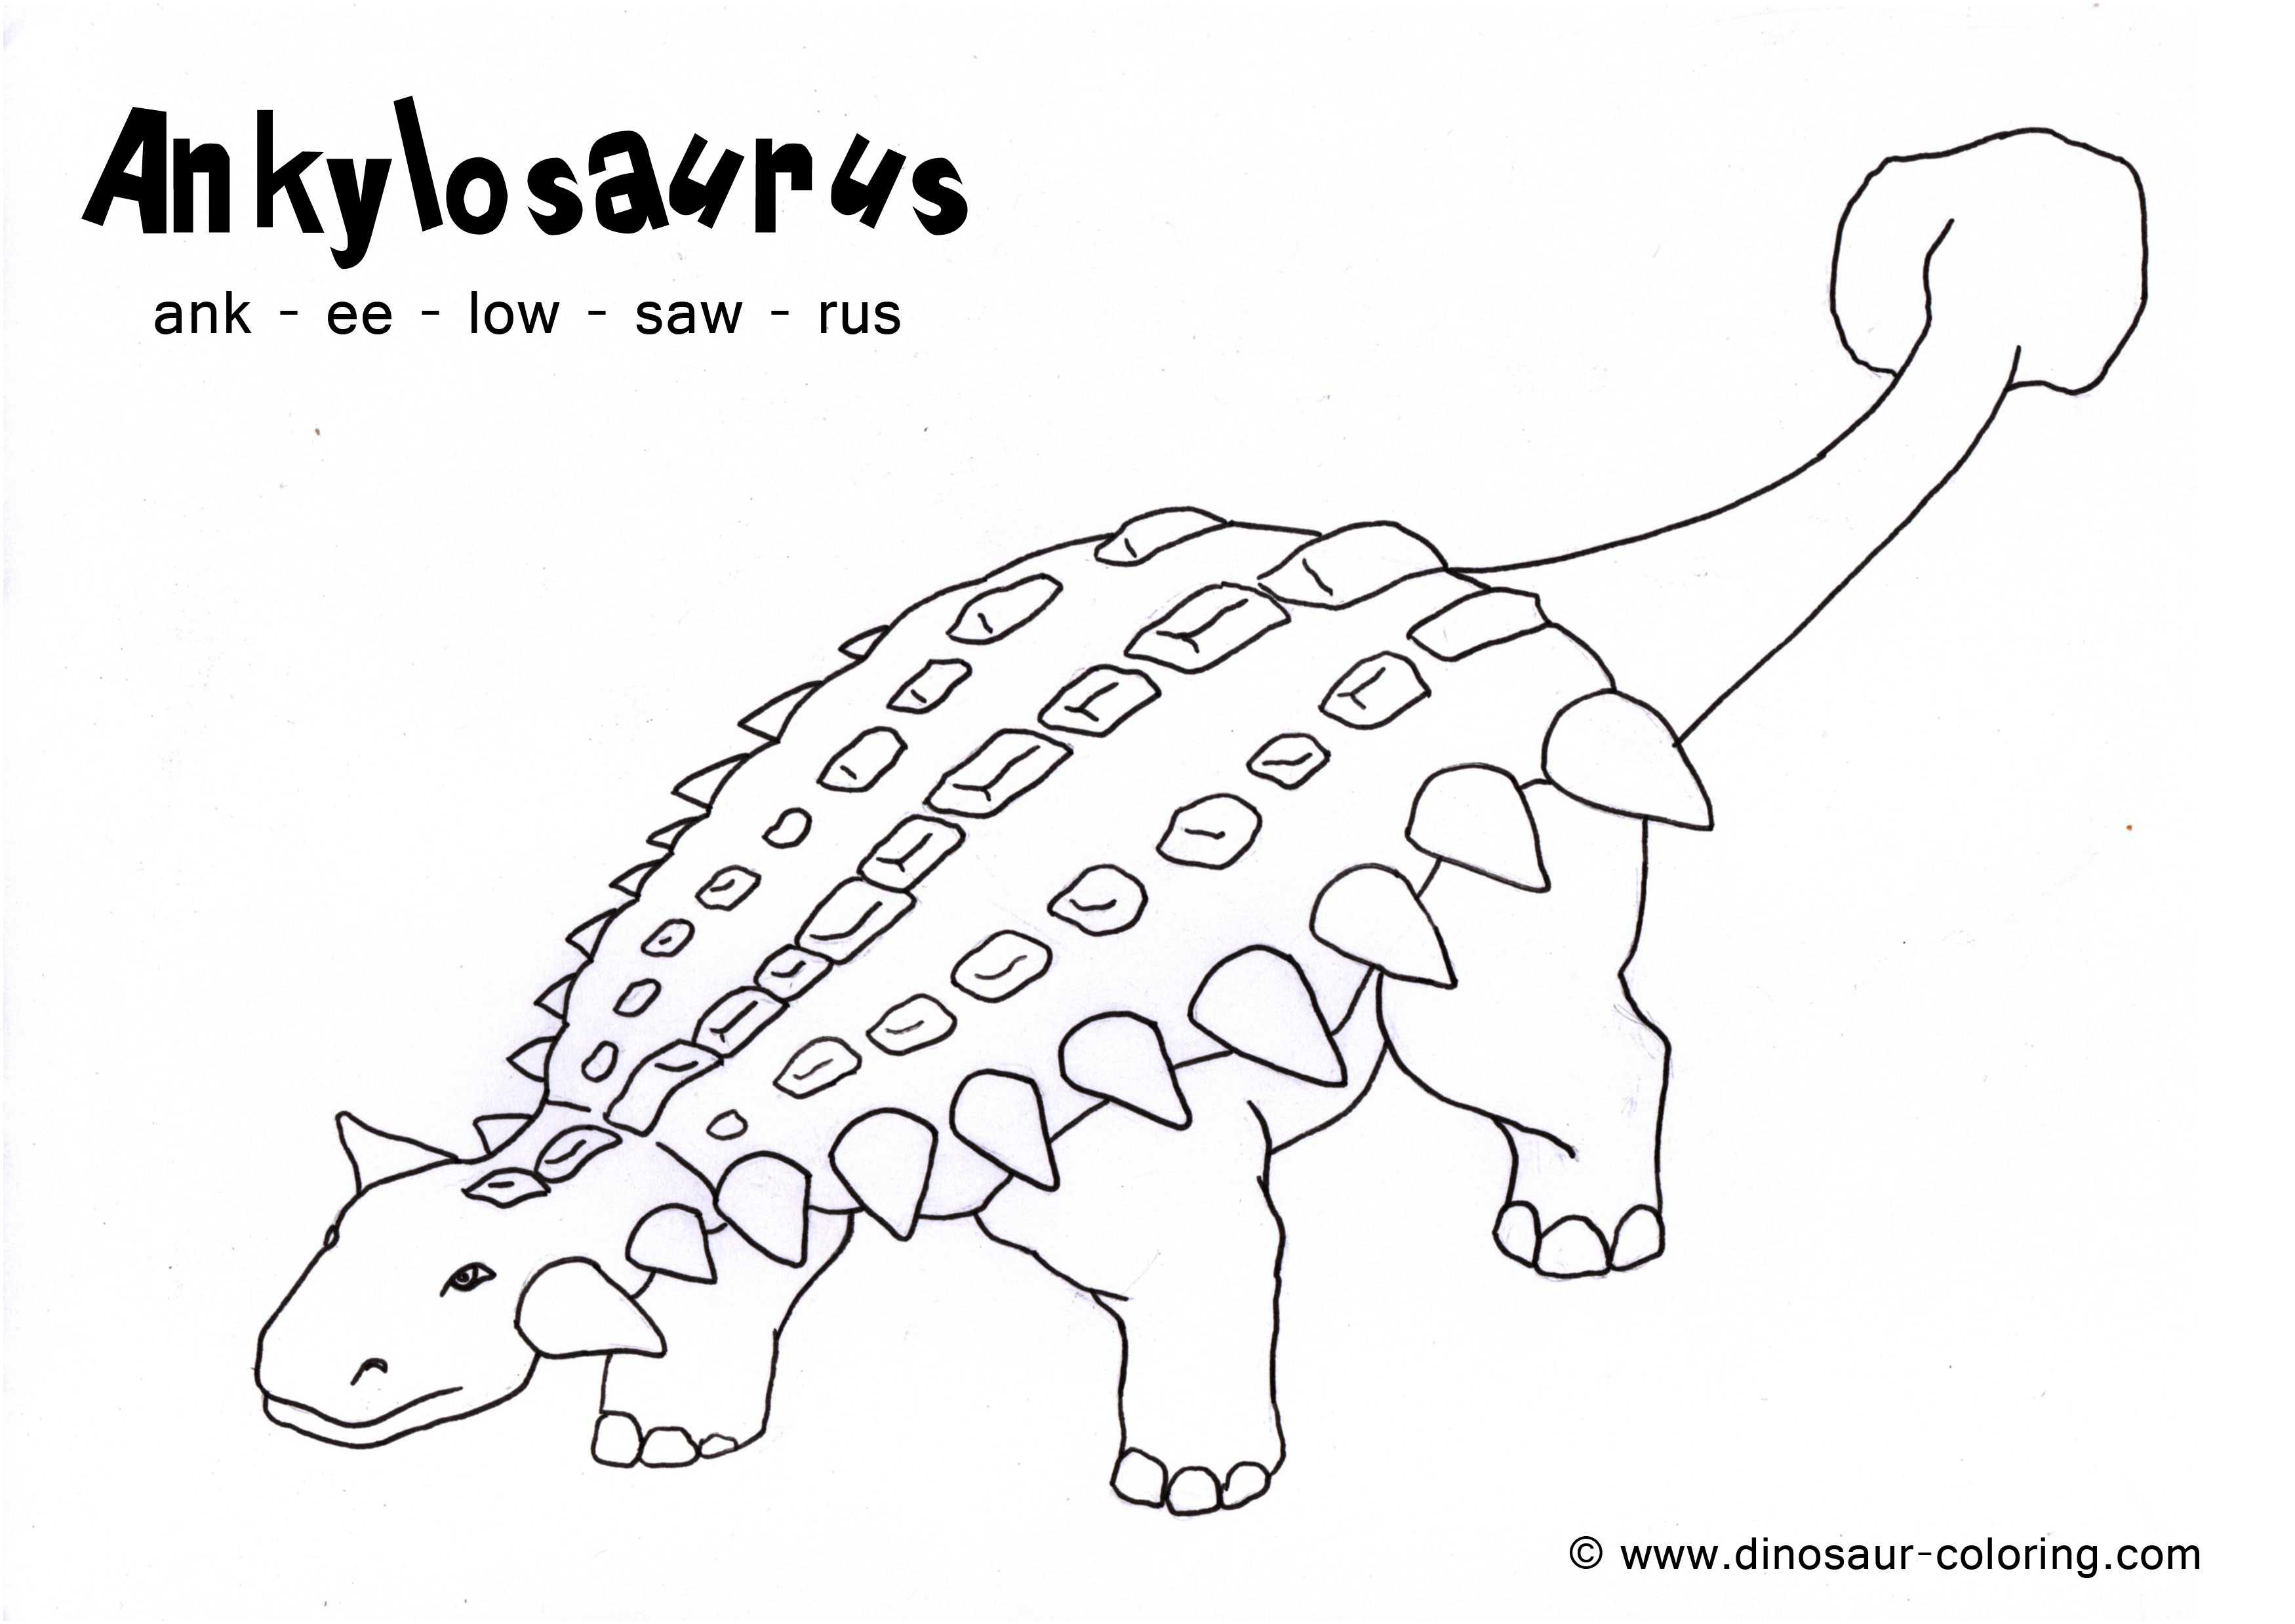 Ankylosaurus Coloring Pages